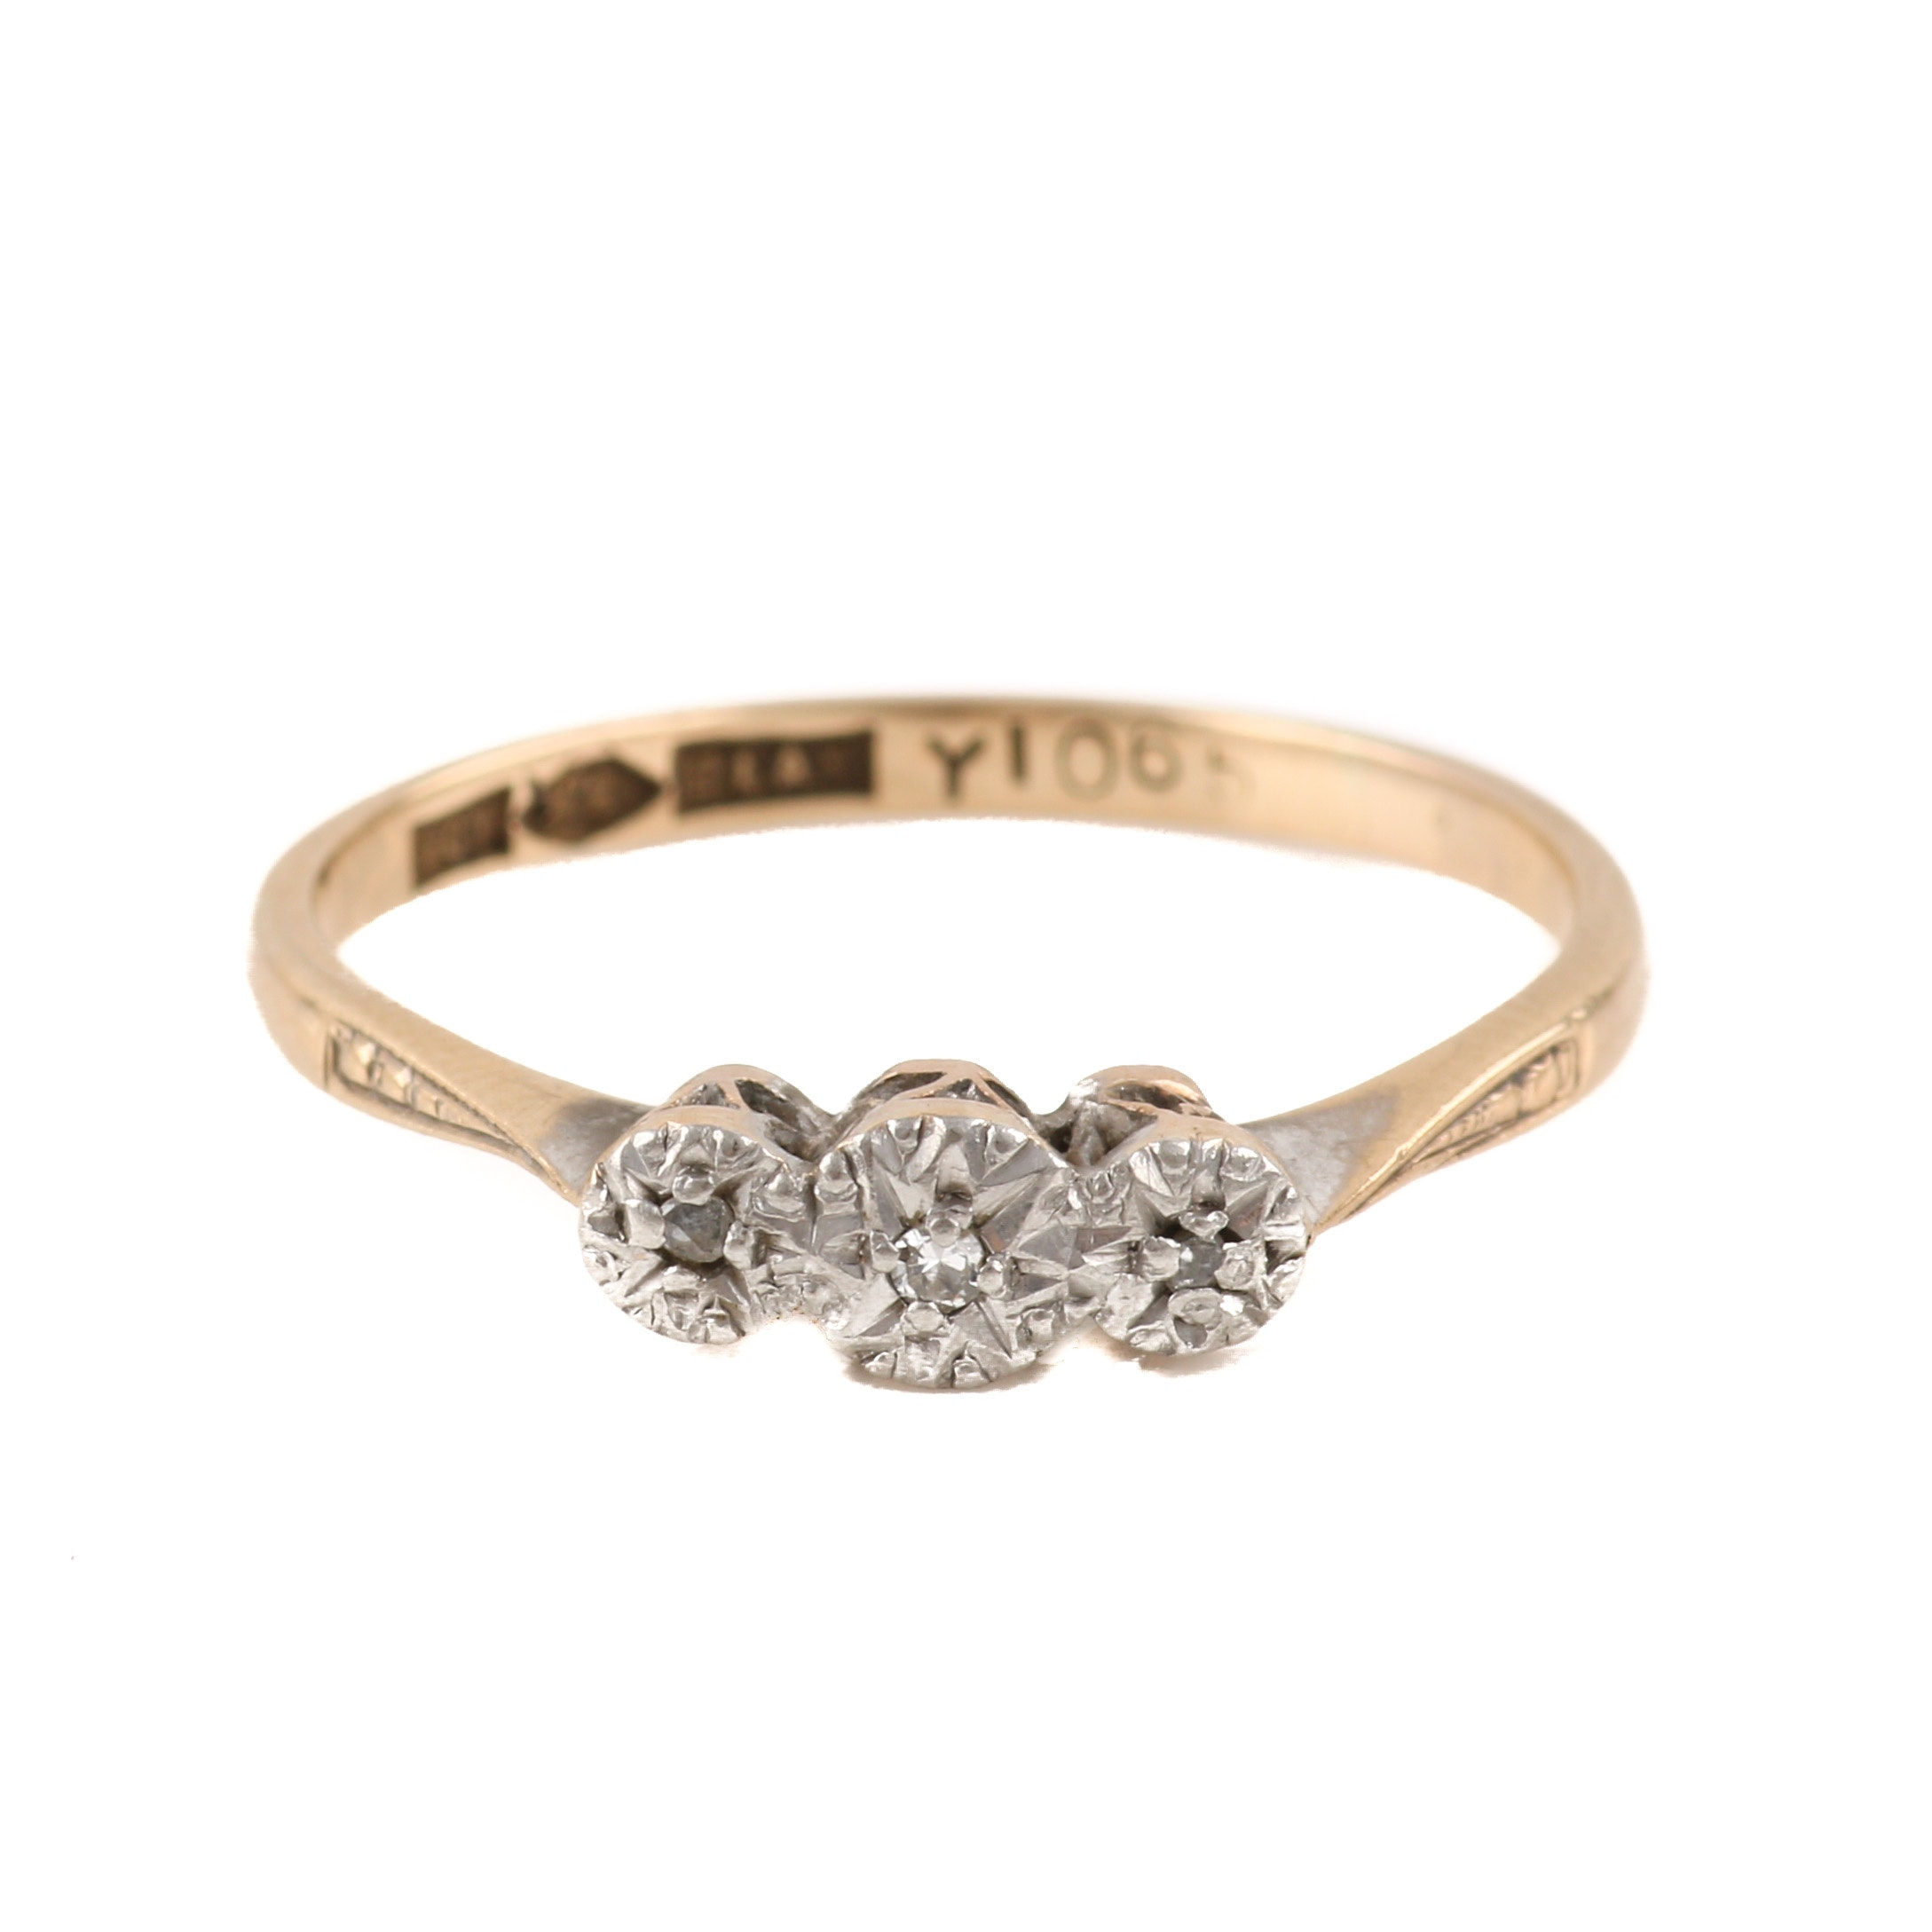 9K Yellow Gold Diamond Ring With Platinum Accents